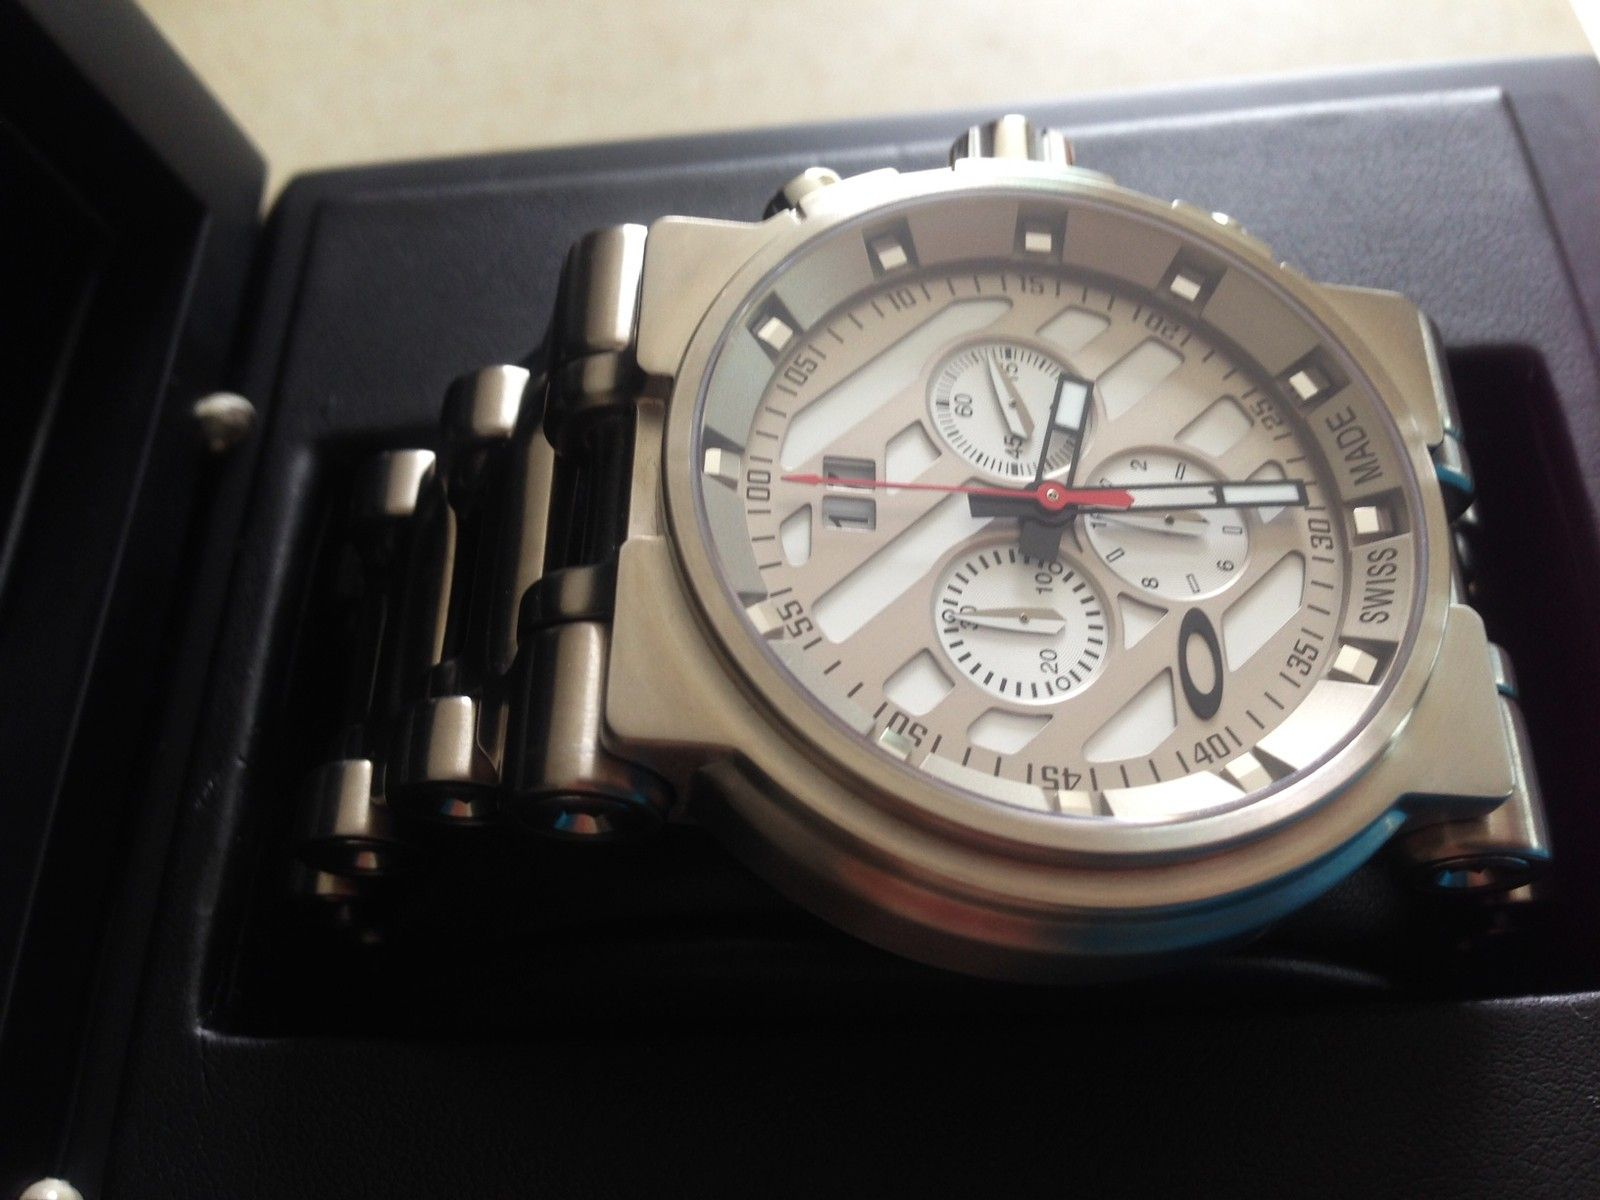 NEW IN BOX Hollow Point Titanium Watch White Dial 10-046 REDUCE PRICE 1,250 or Best Offer - 8.JPG